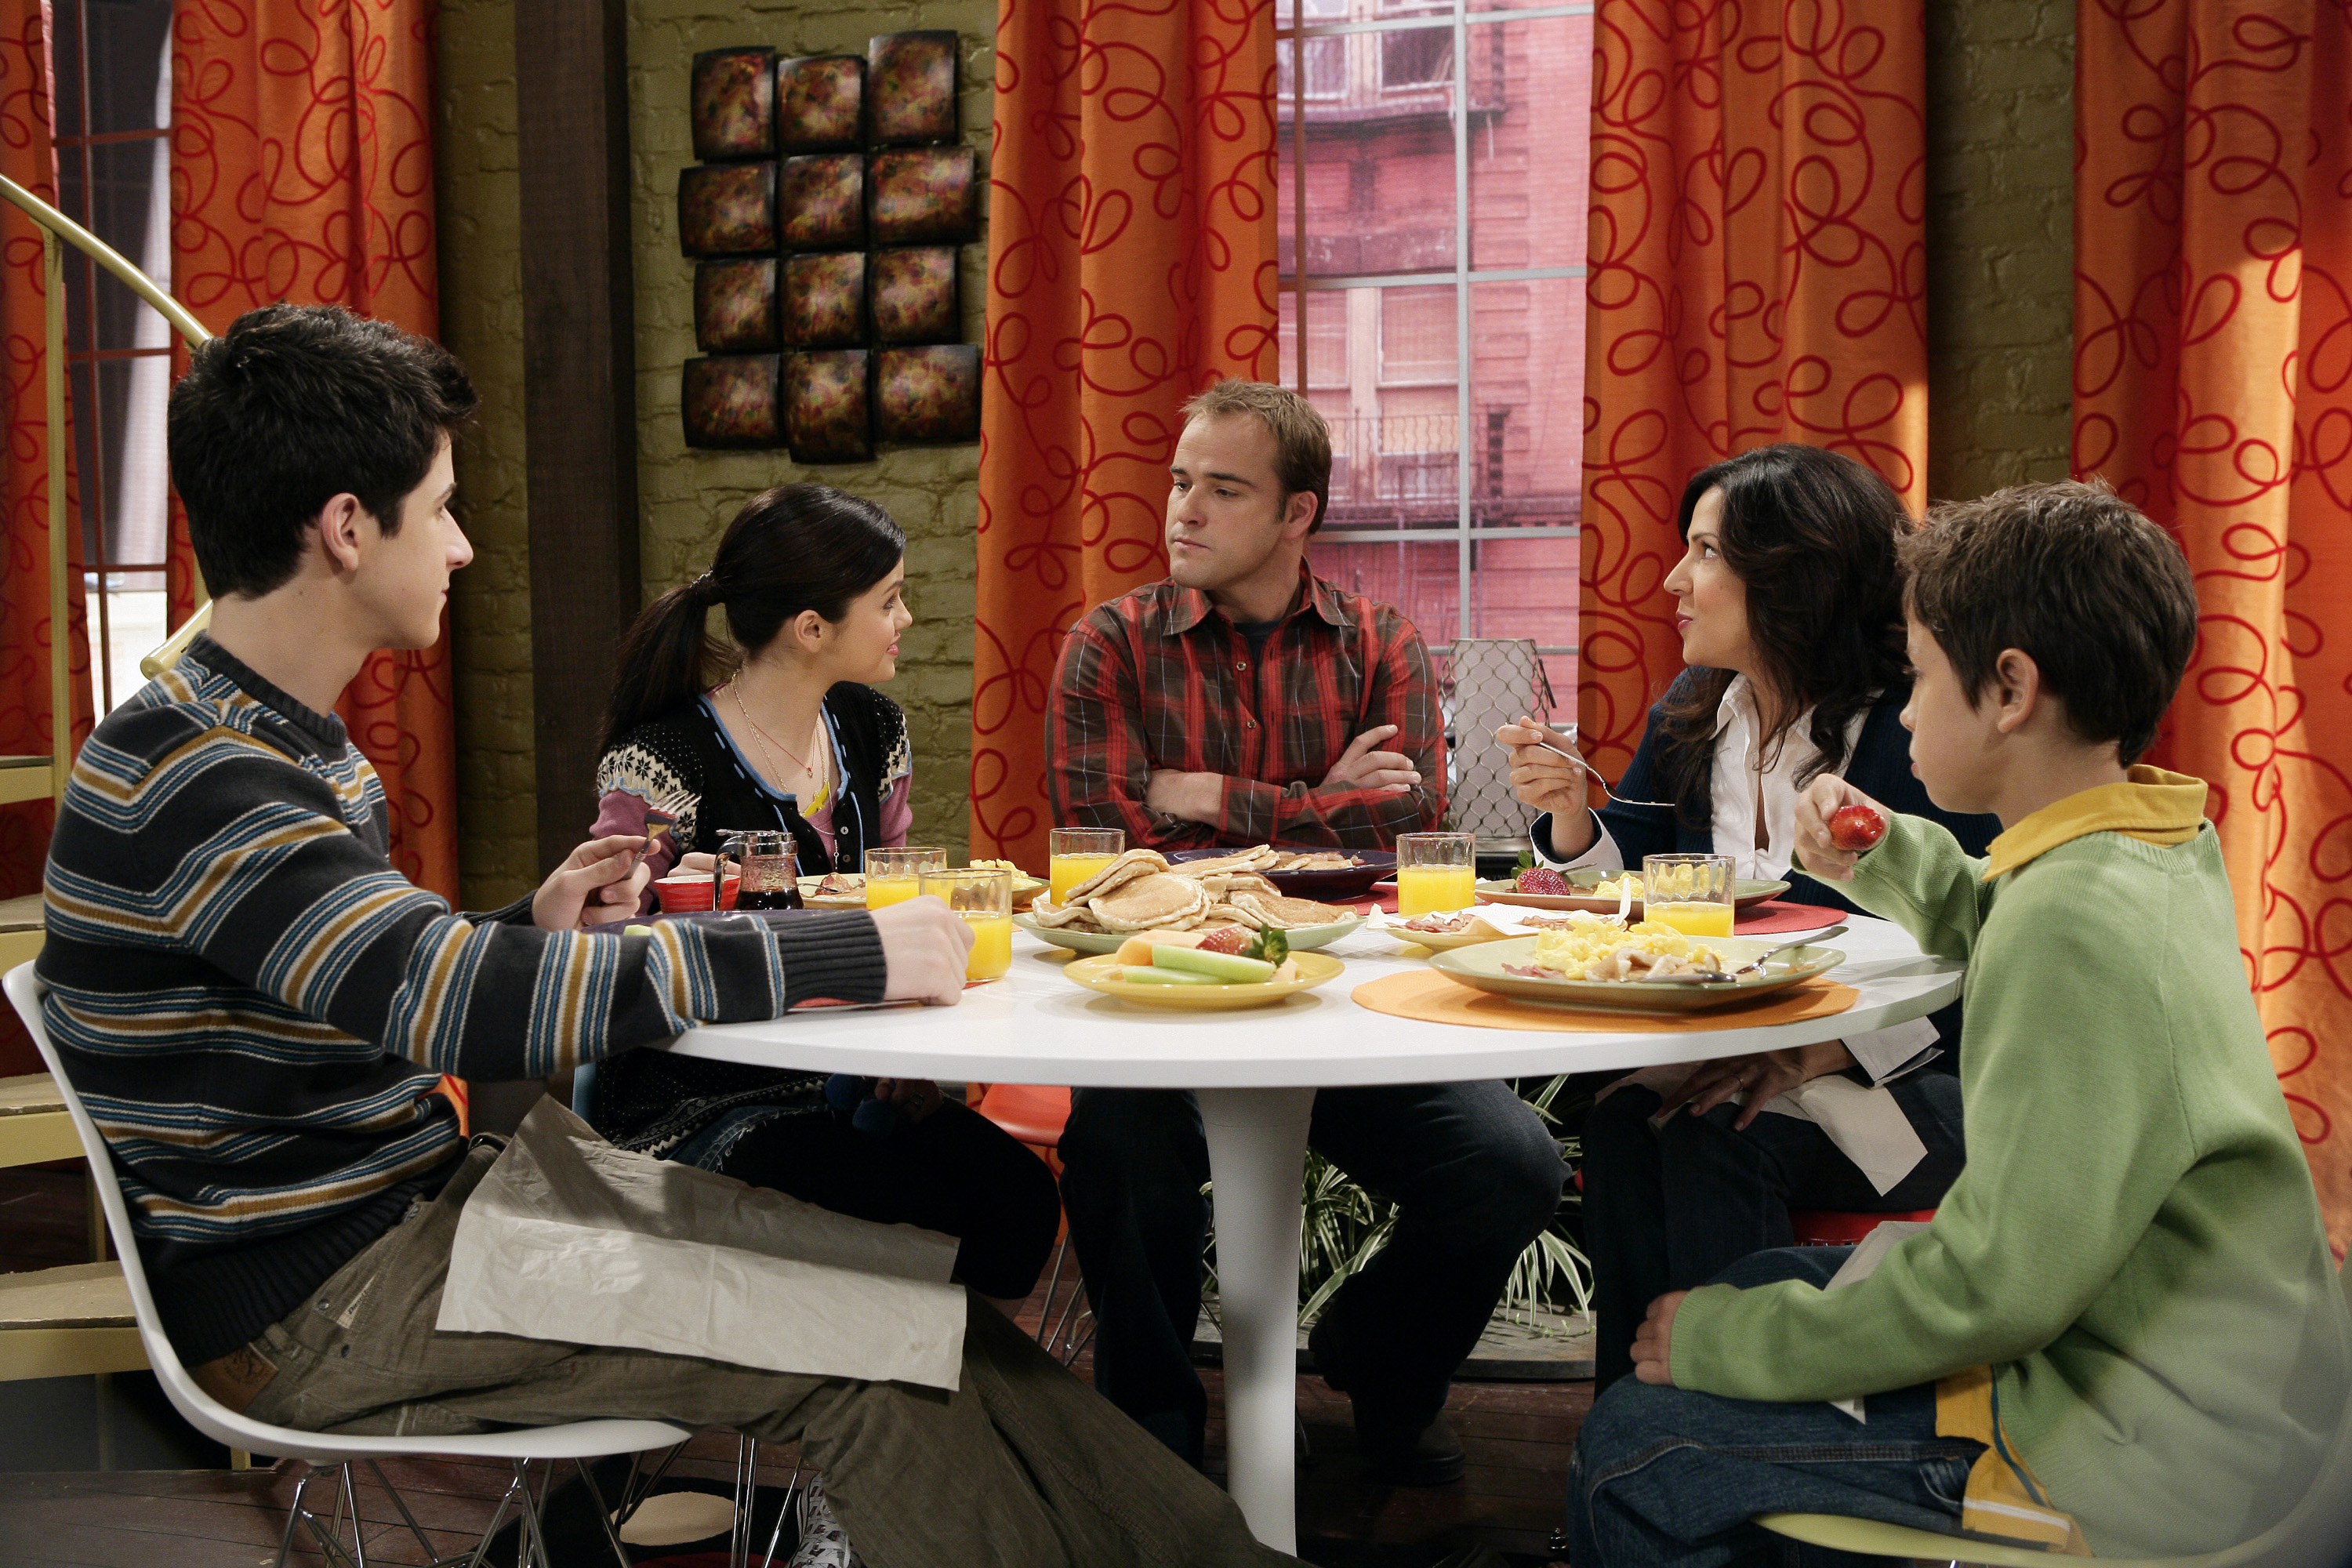 16 images for alex russo wizards of waverly place bedroom